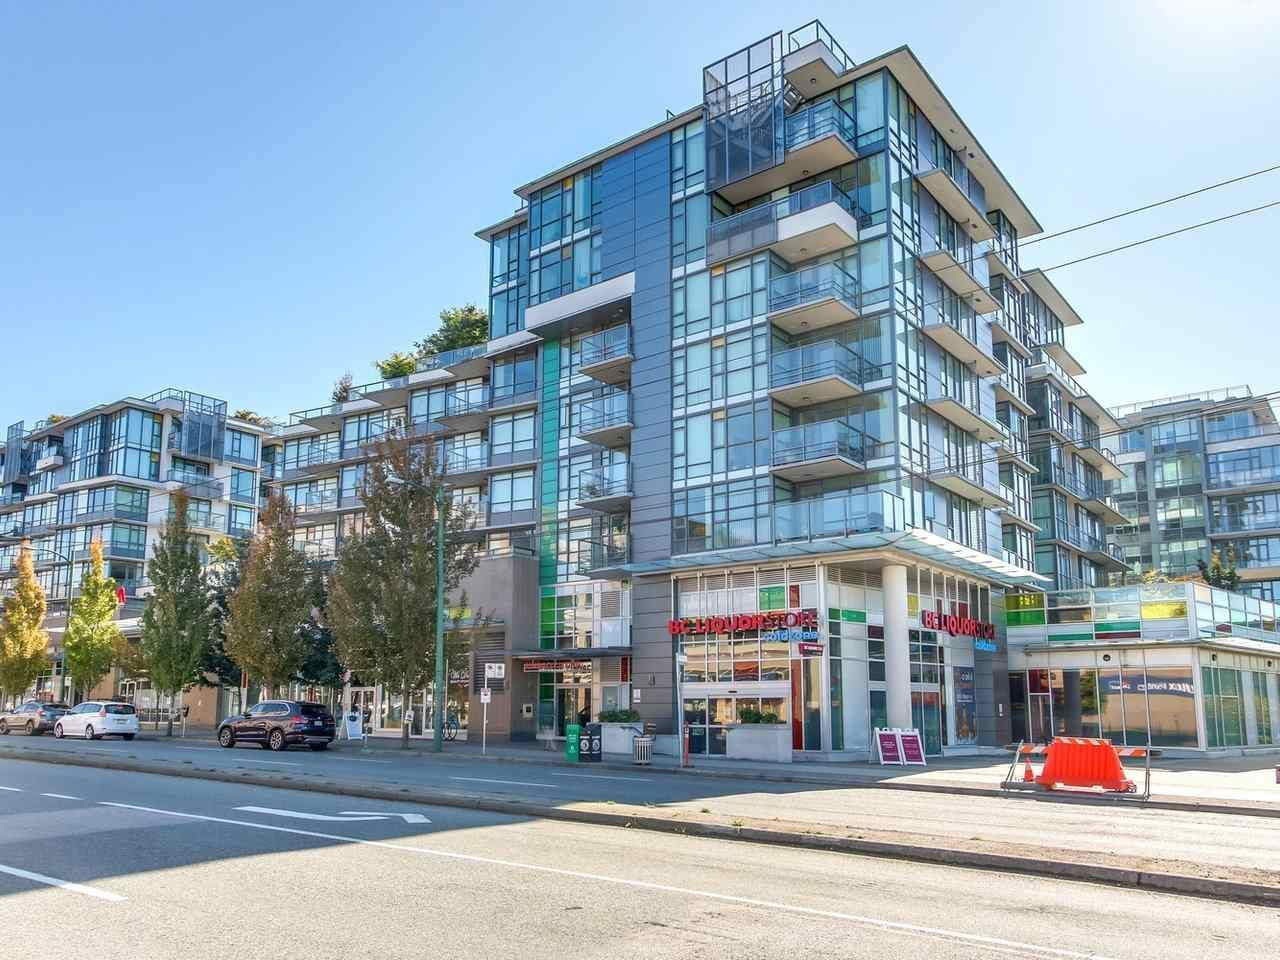 """Main Photo: 375 2080 W BROADWAY in Vancouver: Kitsilano Condo for sale in """"PINNACLE LIVING ON BROADWAY"""" (Vancouver West)  : MLS®# R2211453"""